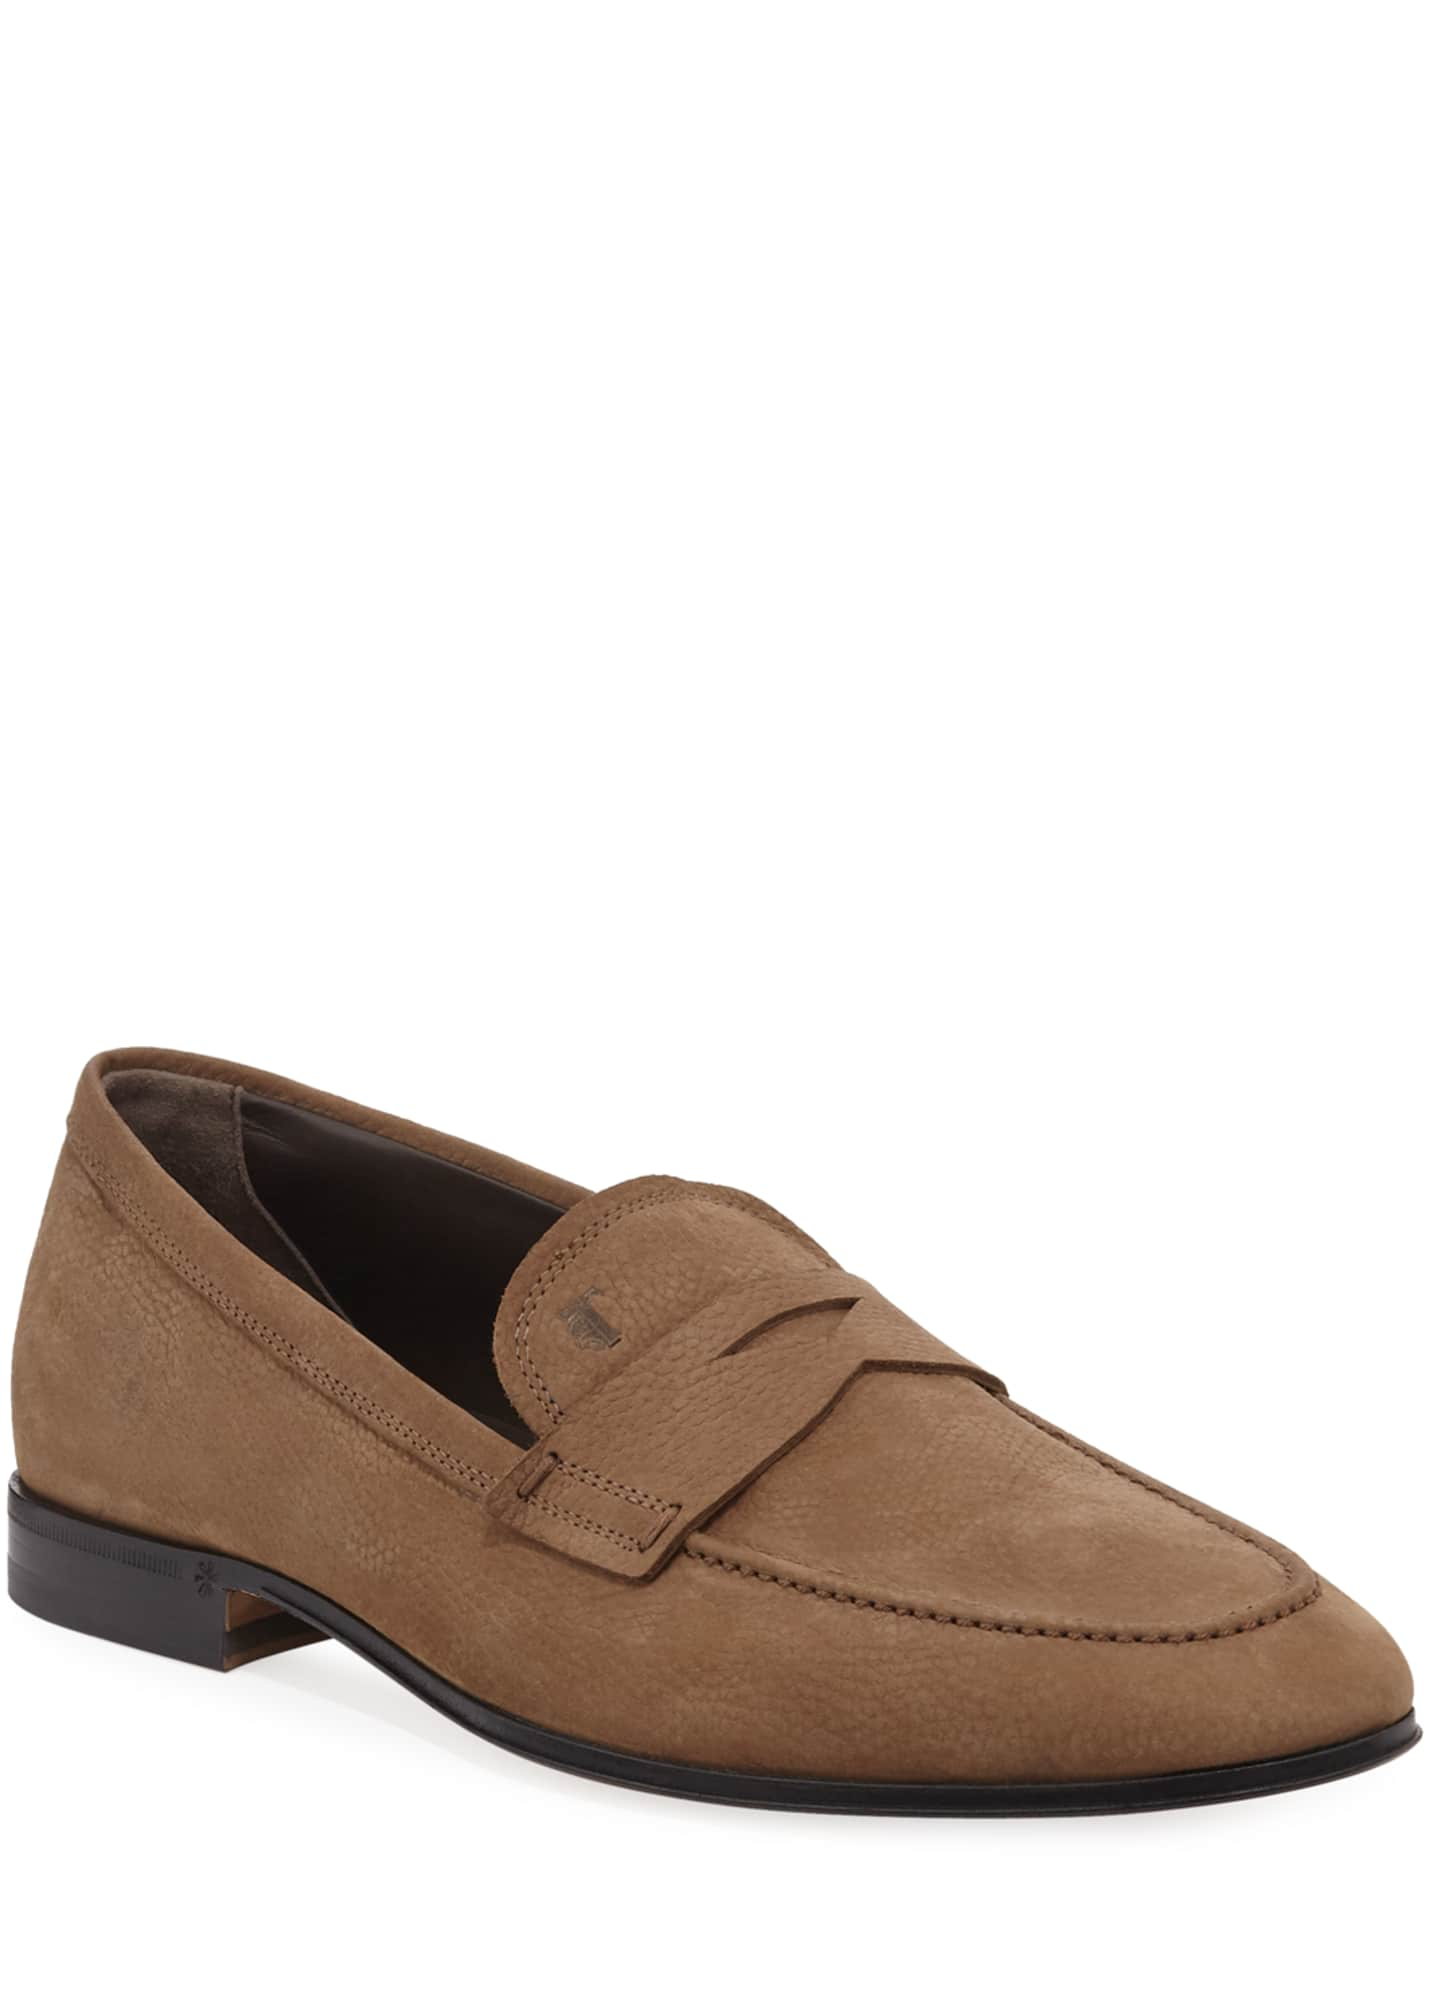 Tod's Men's Slim Mocassino Leather Loafers